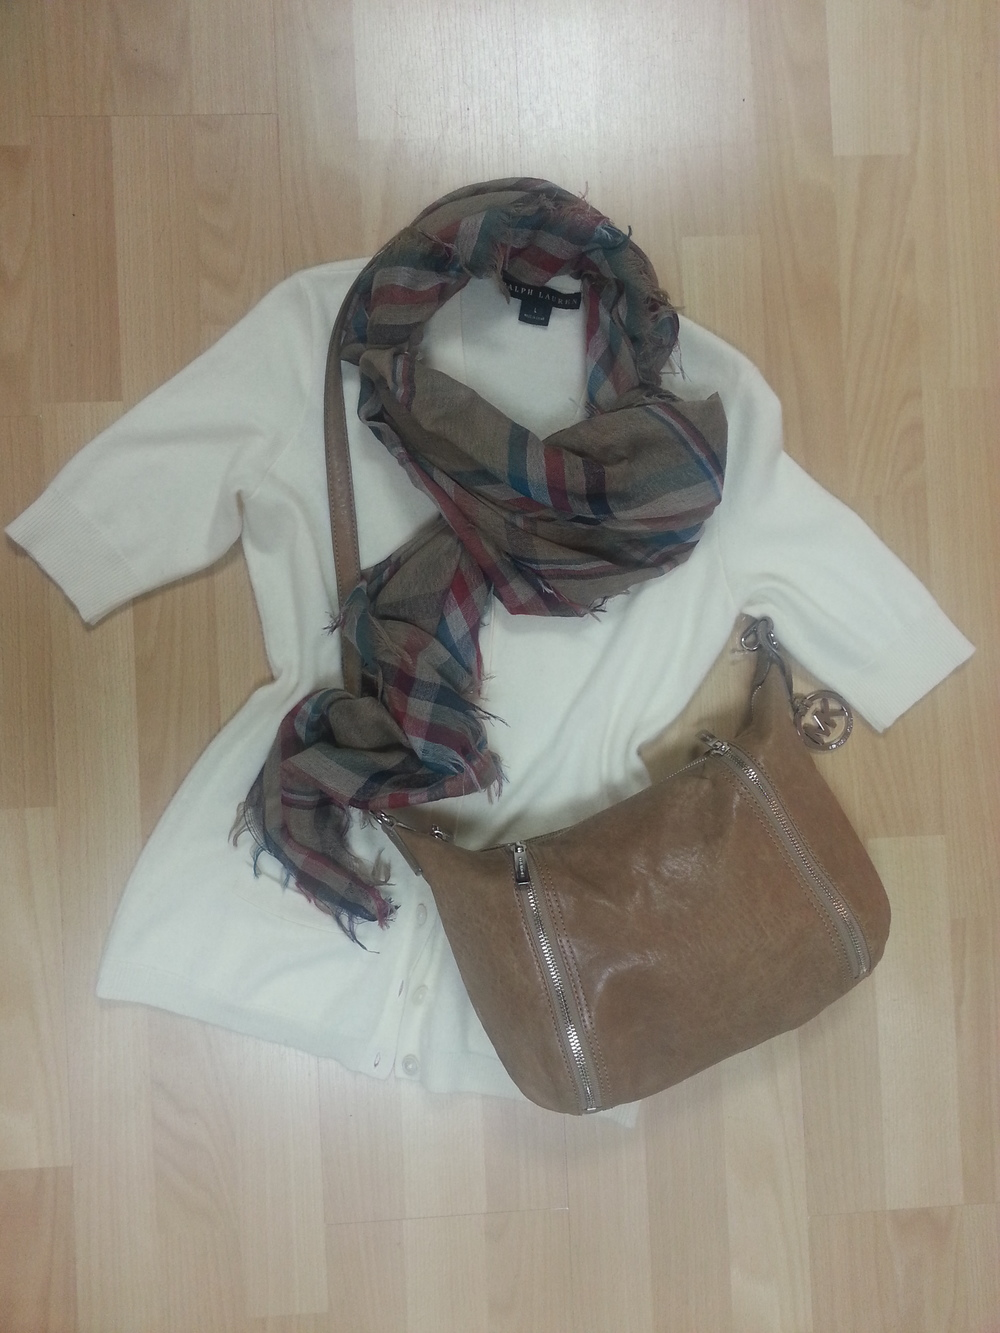 Ivory cashmere short sleeved cardigan Ralph Lauren Black Label, plaid scarf, Kors cross body tan bag